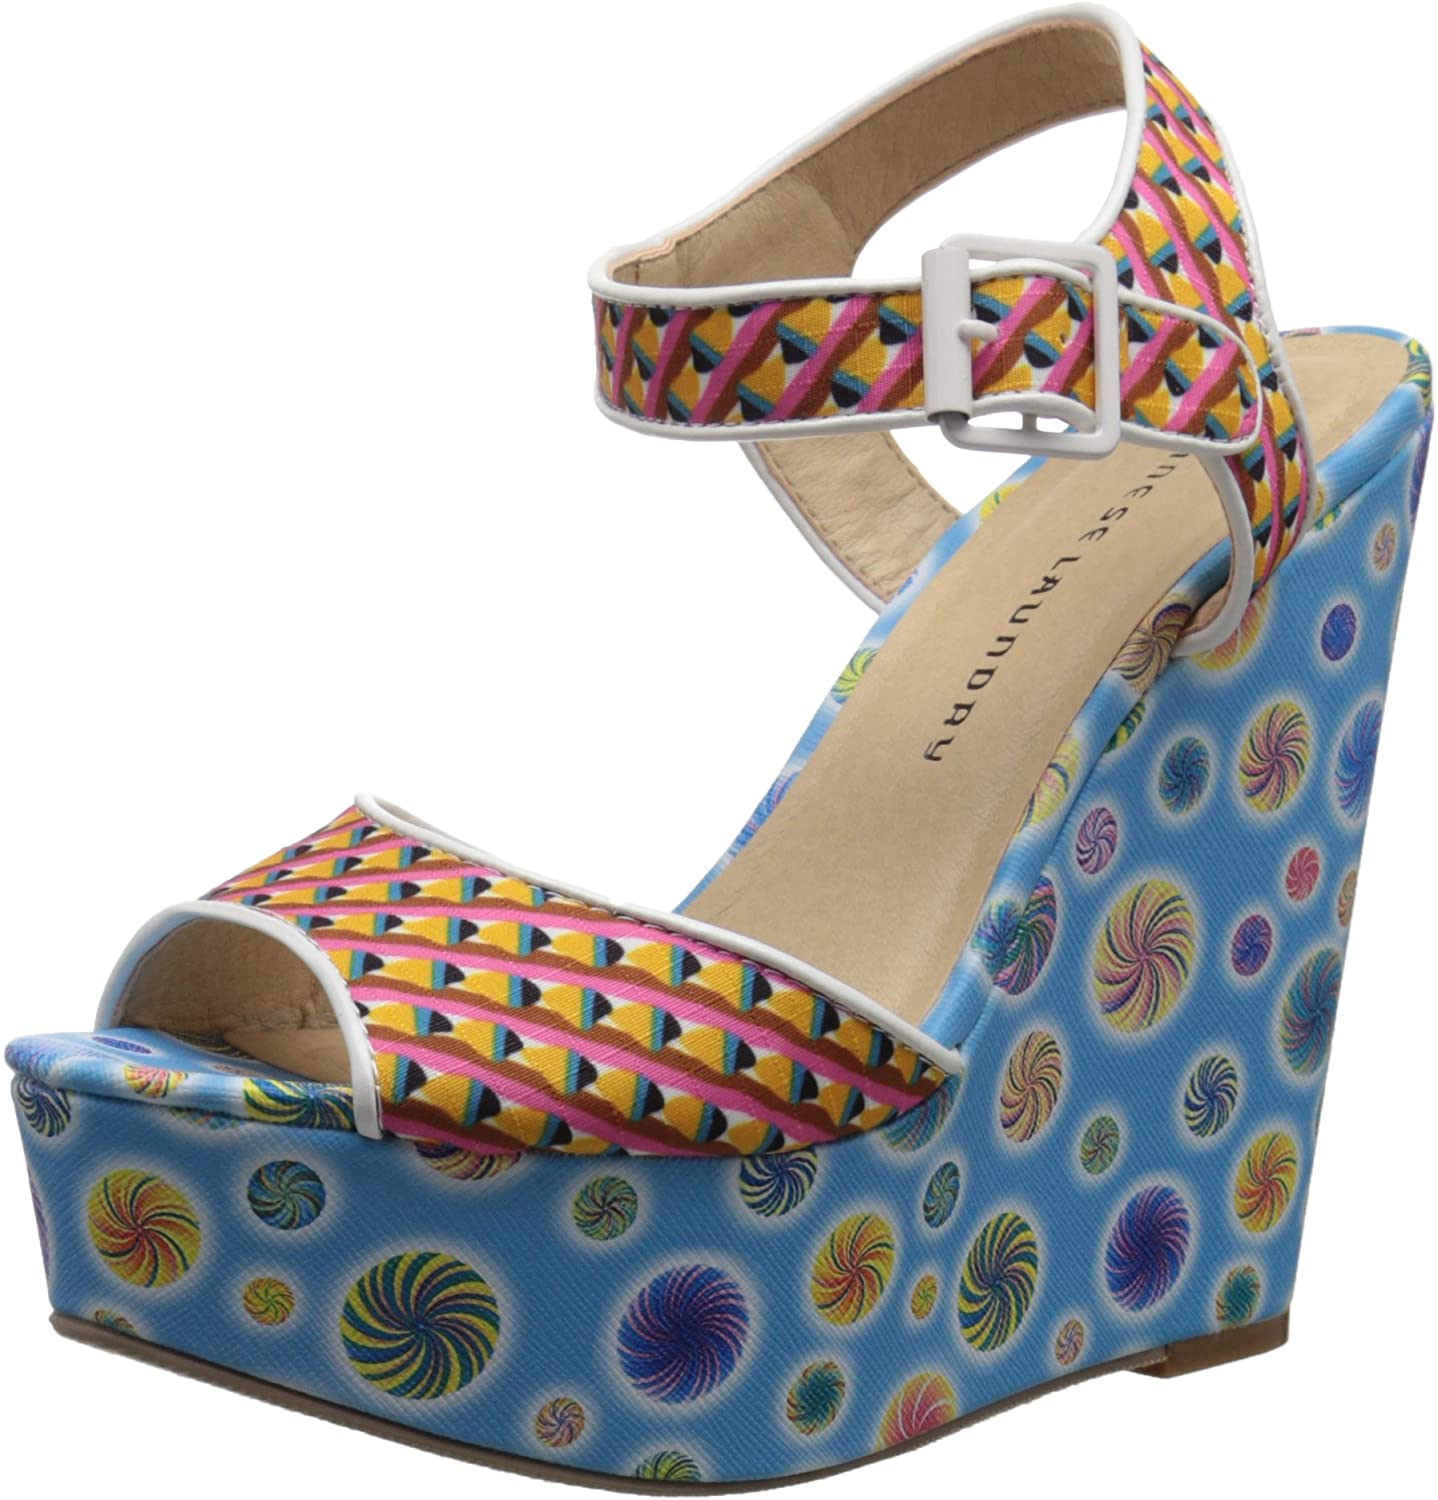 Chinese Laundry Women's Jollypop Wedge Sandal